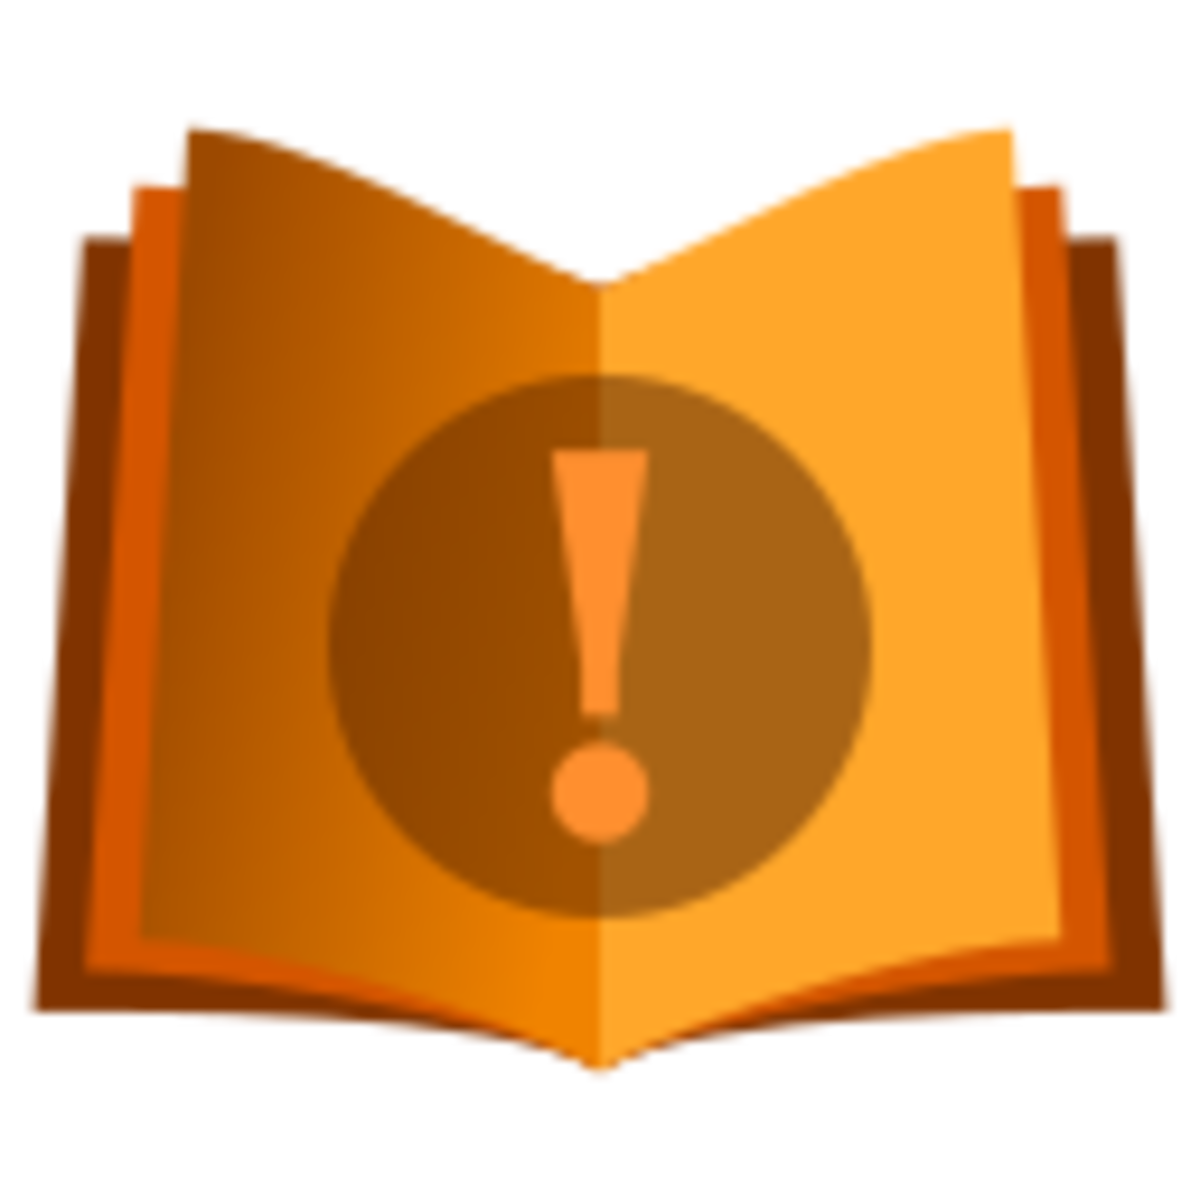 128px-Book_important2.svg